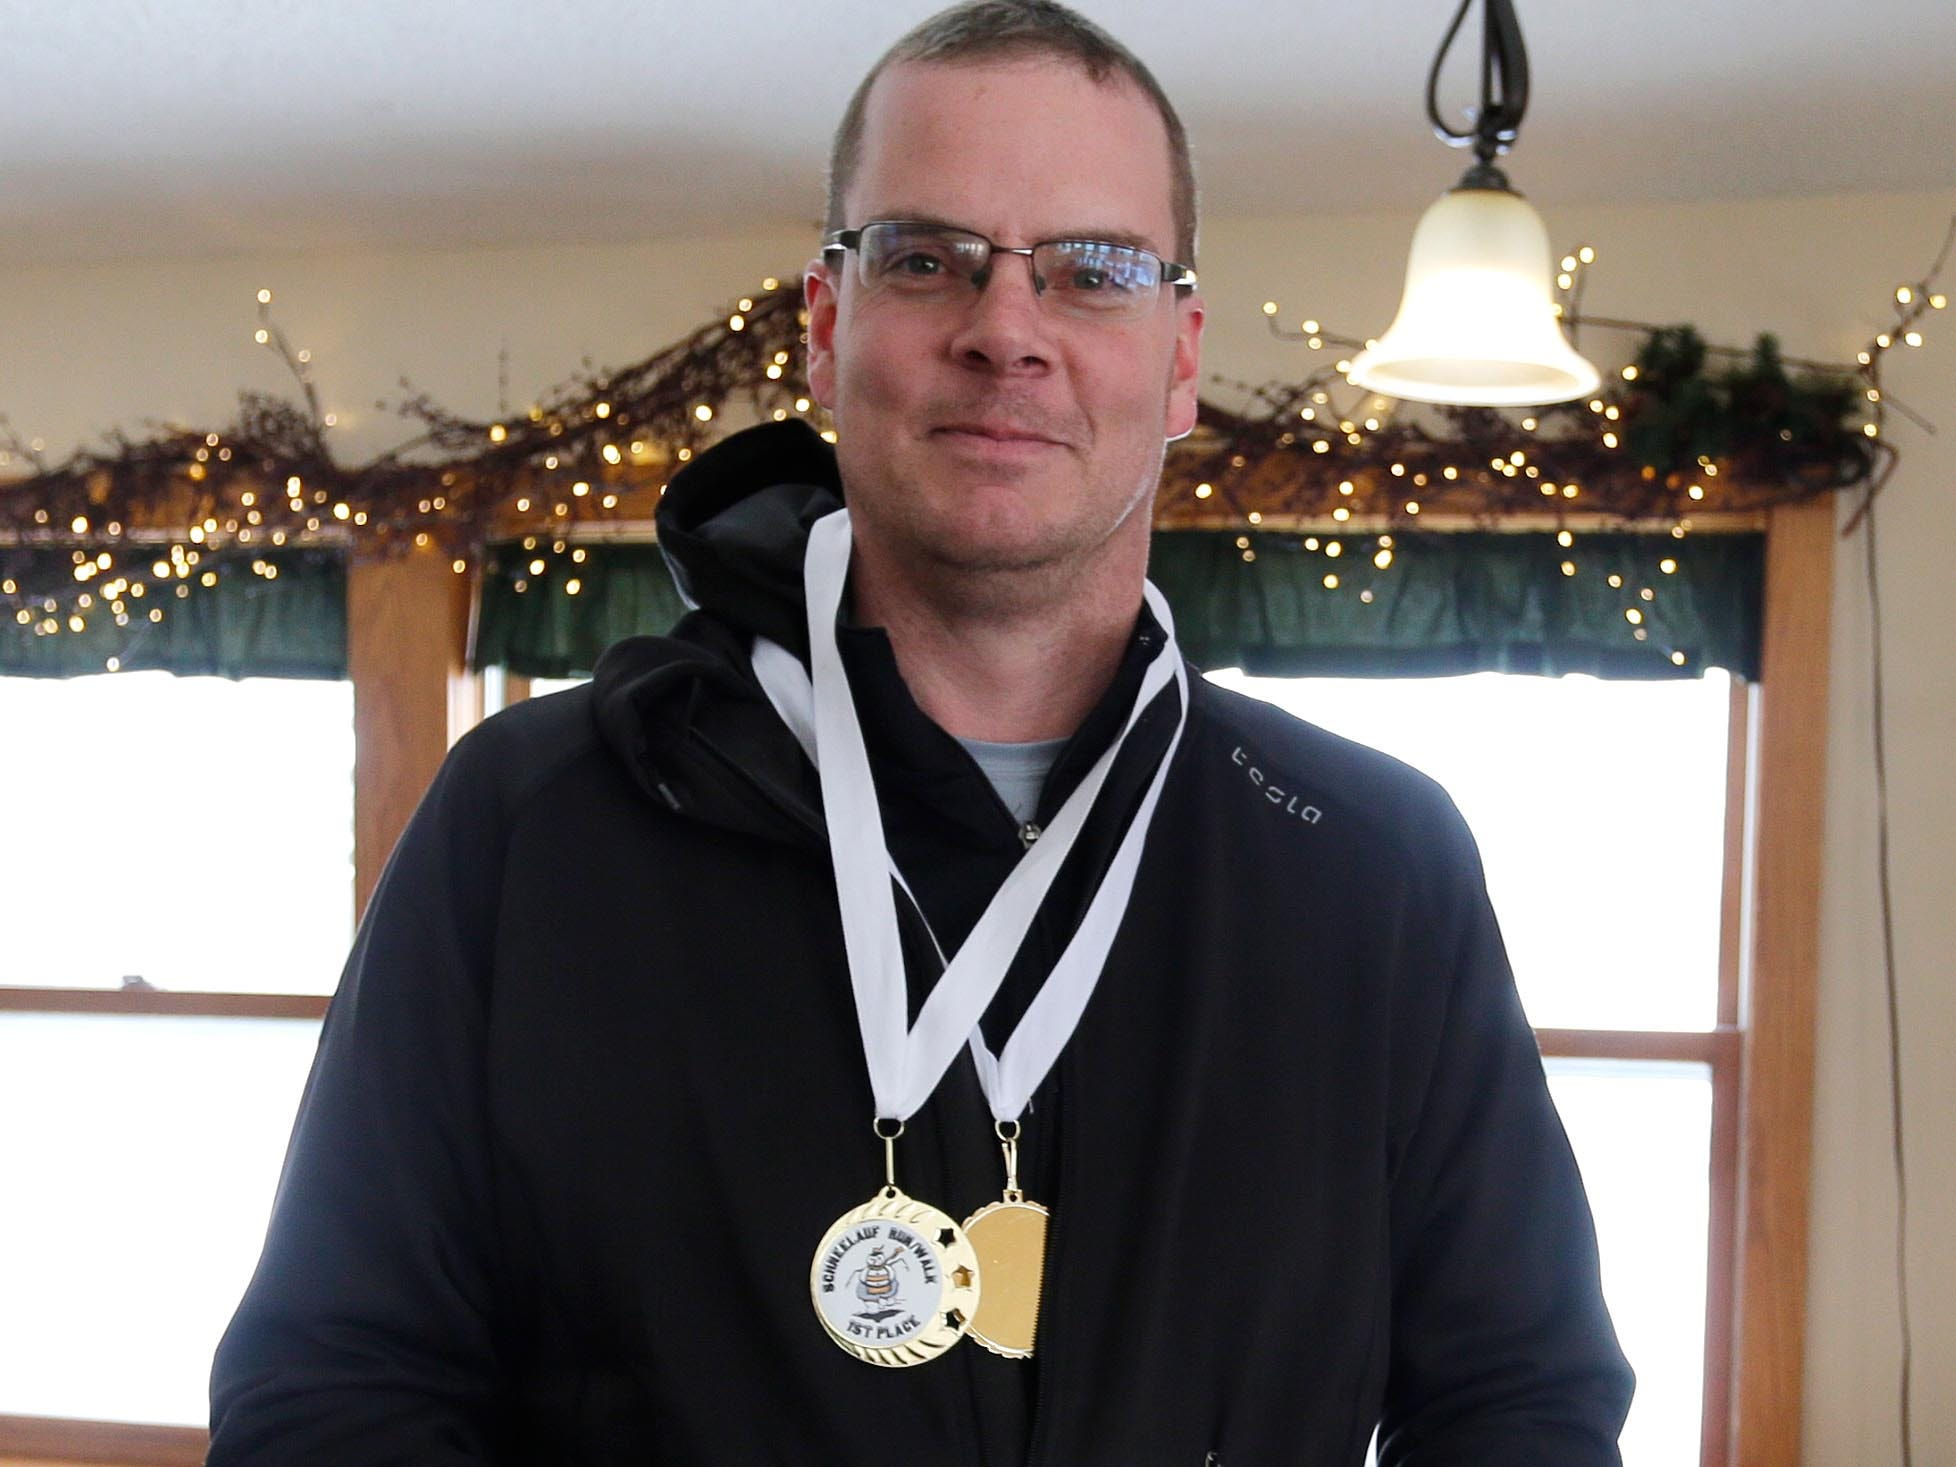 Mark Burgard (9) of Manitowoc, Wis. poses with his medals following Schneelauf Run, Saturday, January 26, 2019, in Elkhart Lake, Wis. Burgard took first place with a time of 13:59 for the two-mile event.